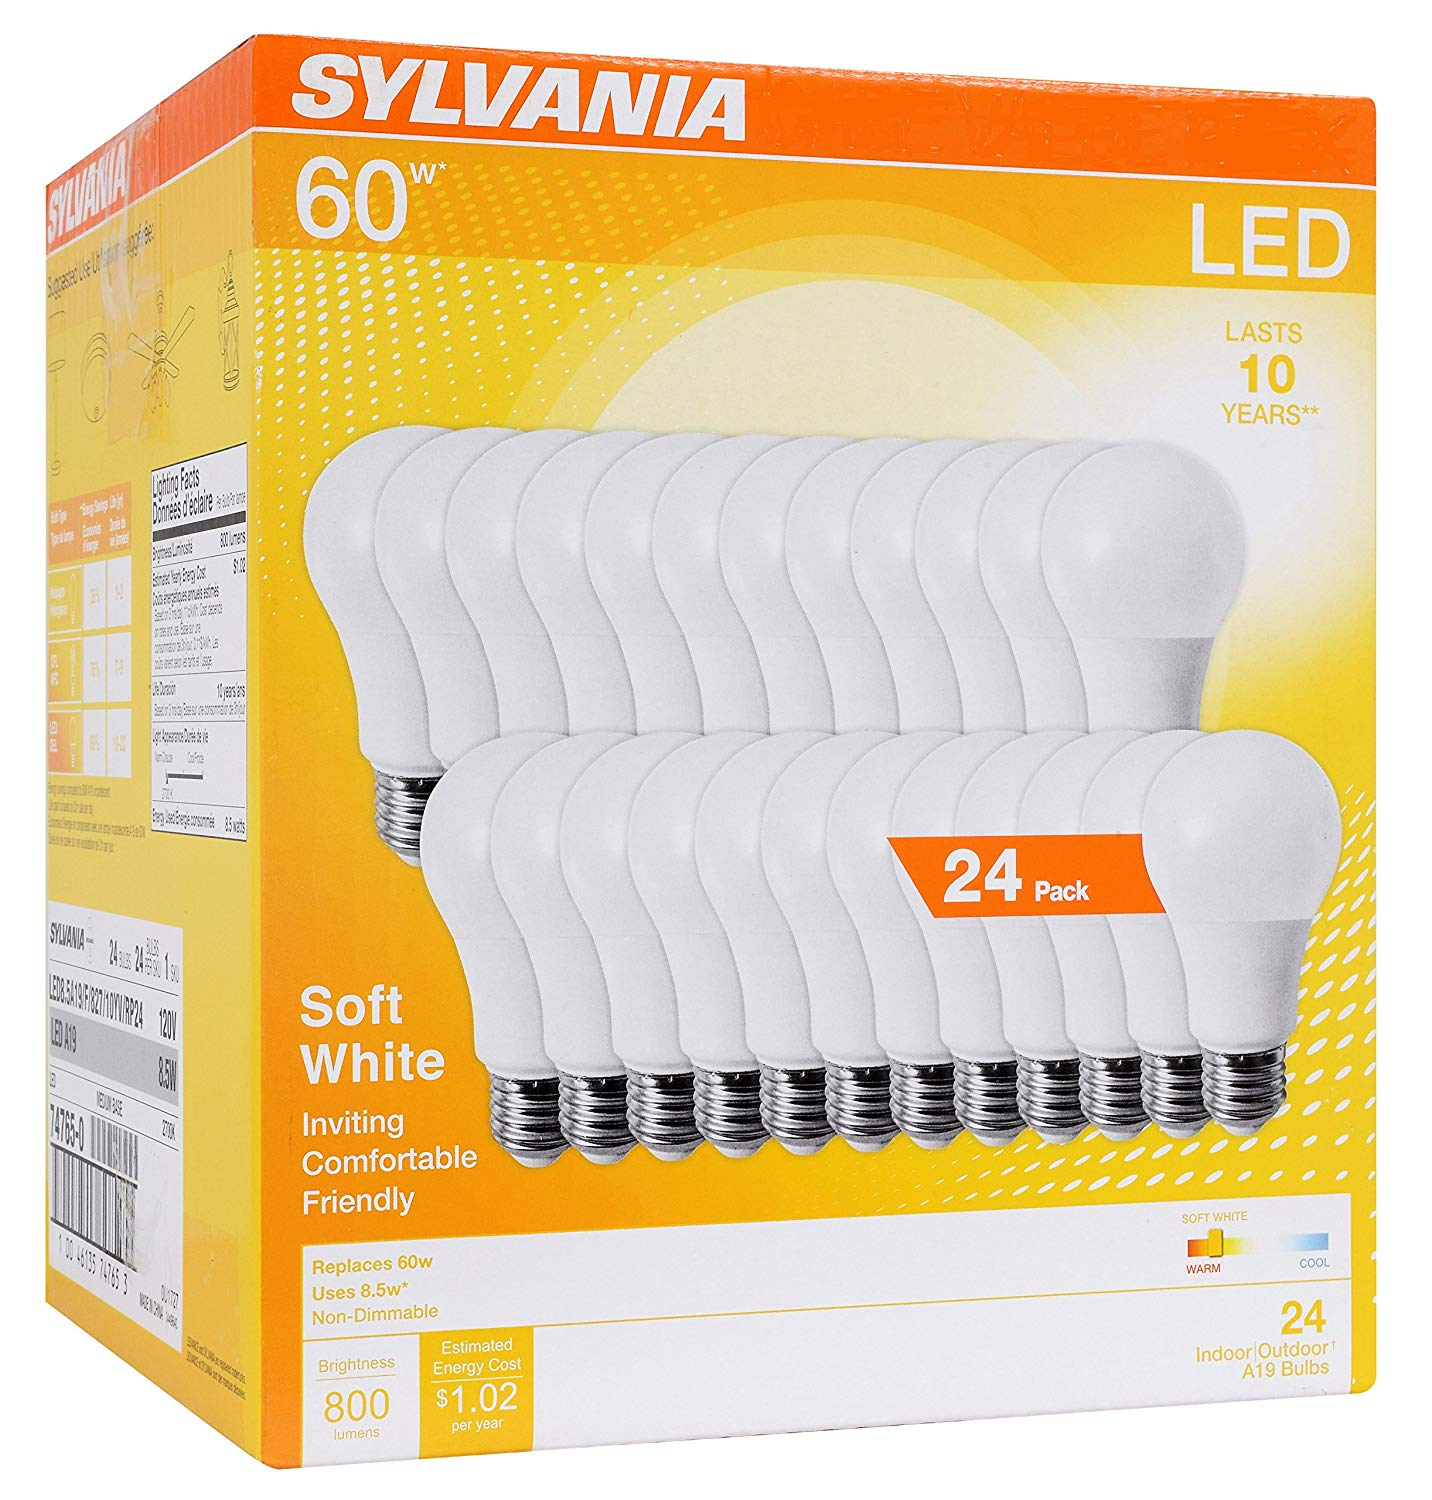 SYLVANIA 74765 A19 Efficient 8.5W Soft White 2700K 60W Equivalent A29 LED Light Bulb (24 Pack), Count